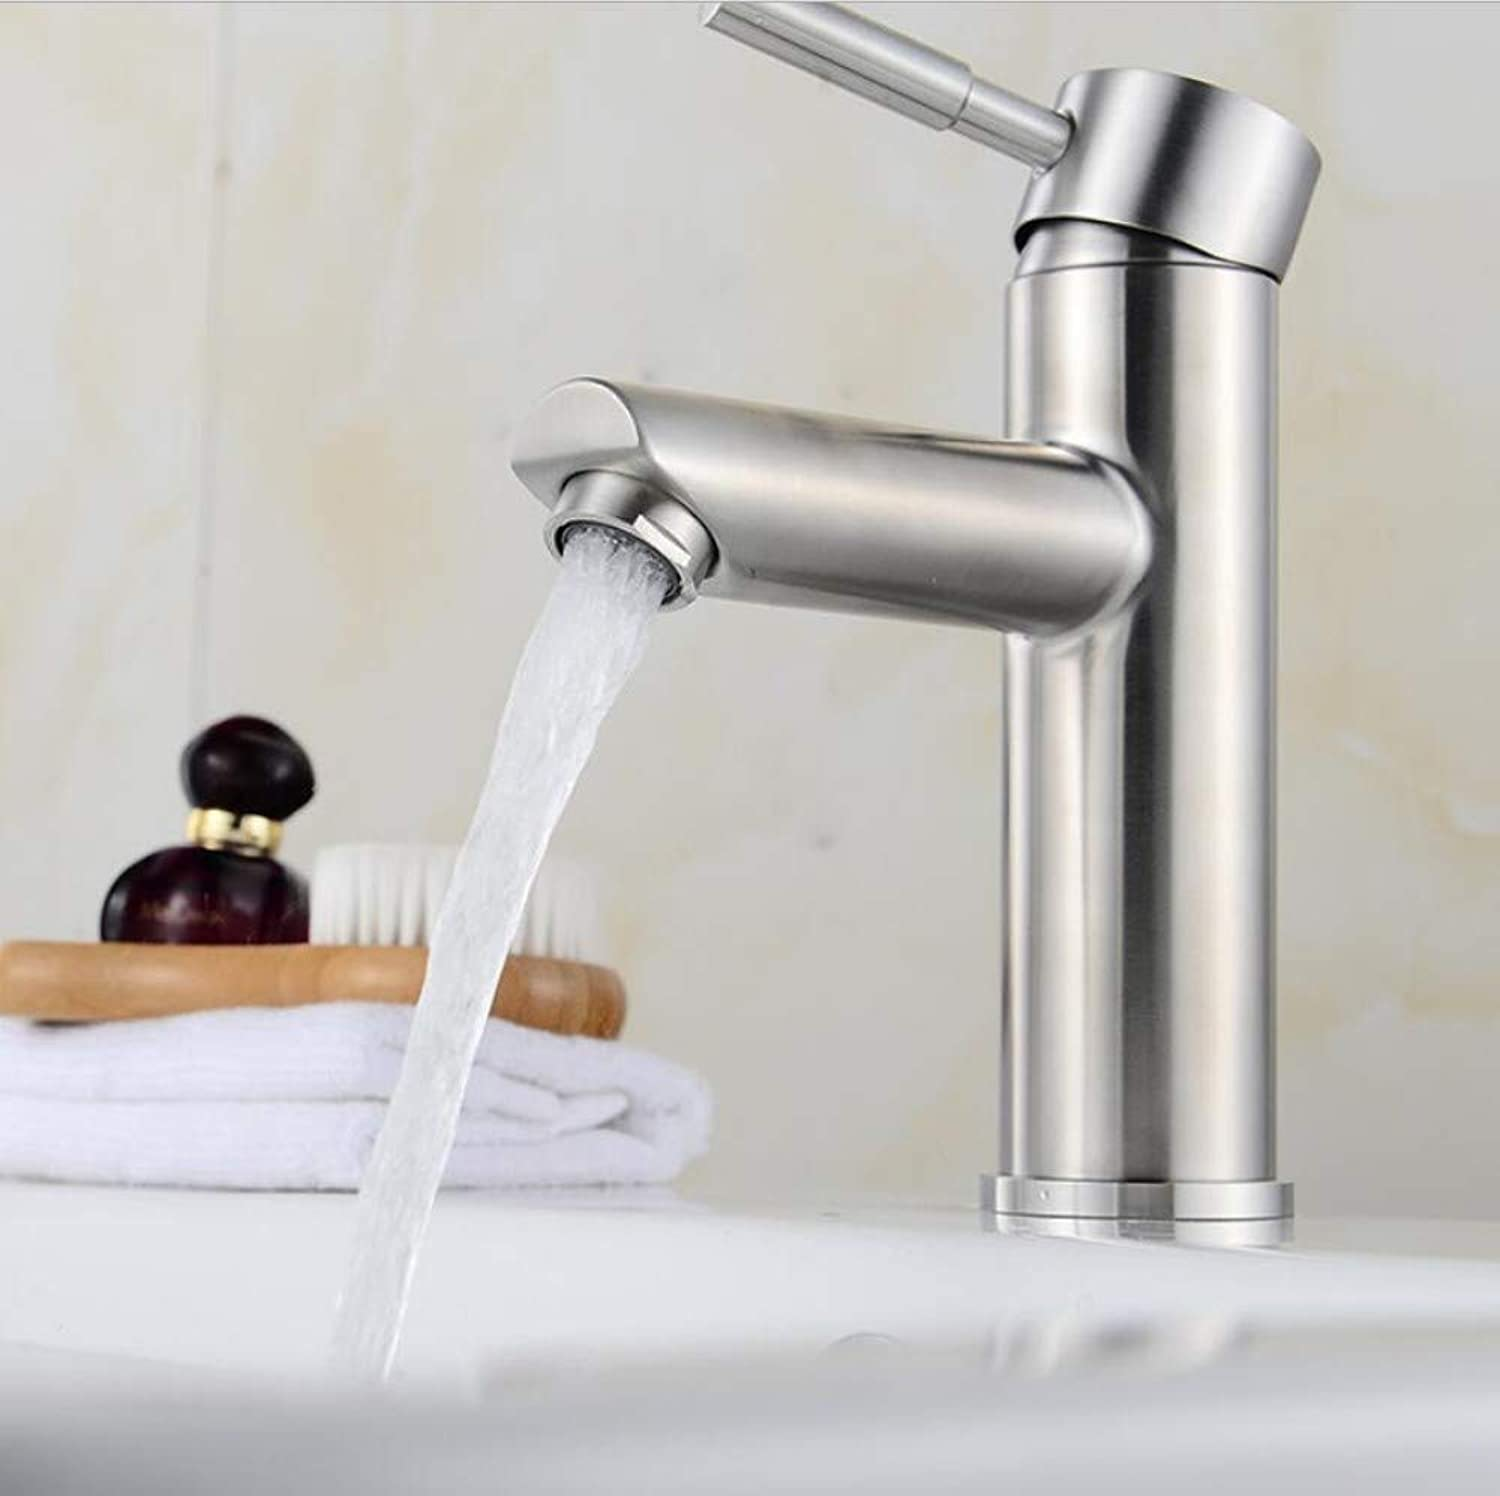 Bathroom Sink Basin Lever Mixer Tap Sus 304 Stainless Steel Single Hole Cold and Hot Water Faucet for Heavy Thickened Face Pot